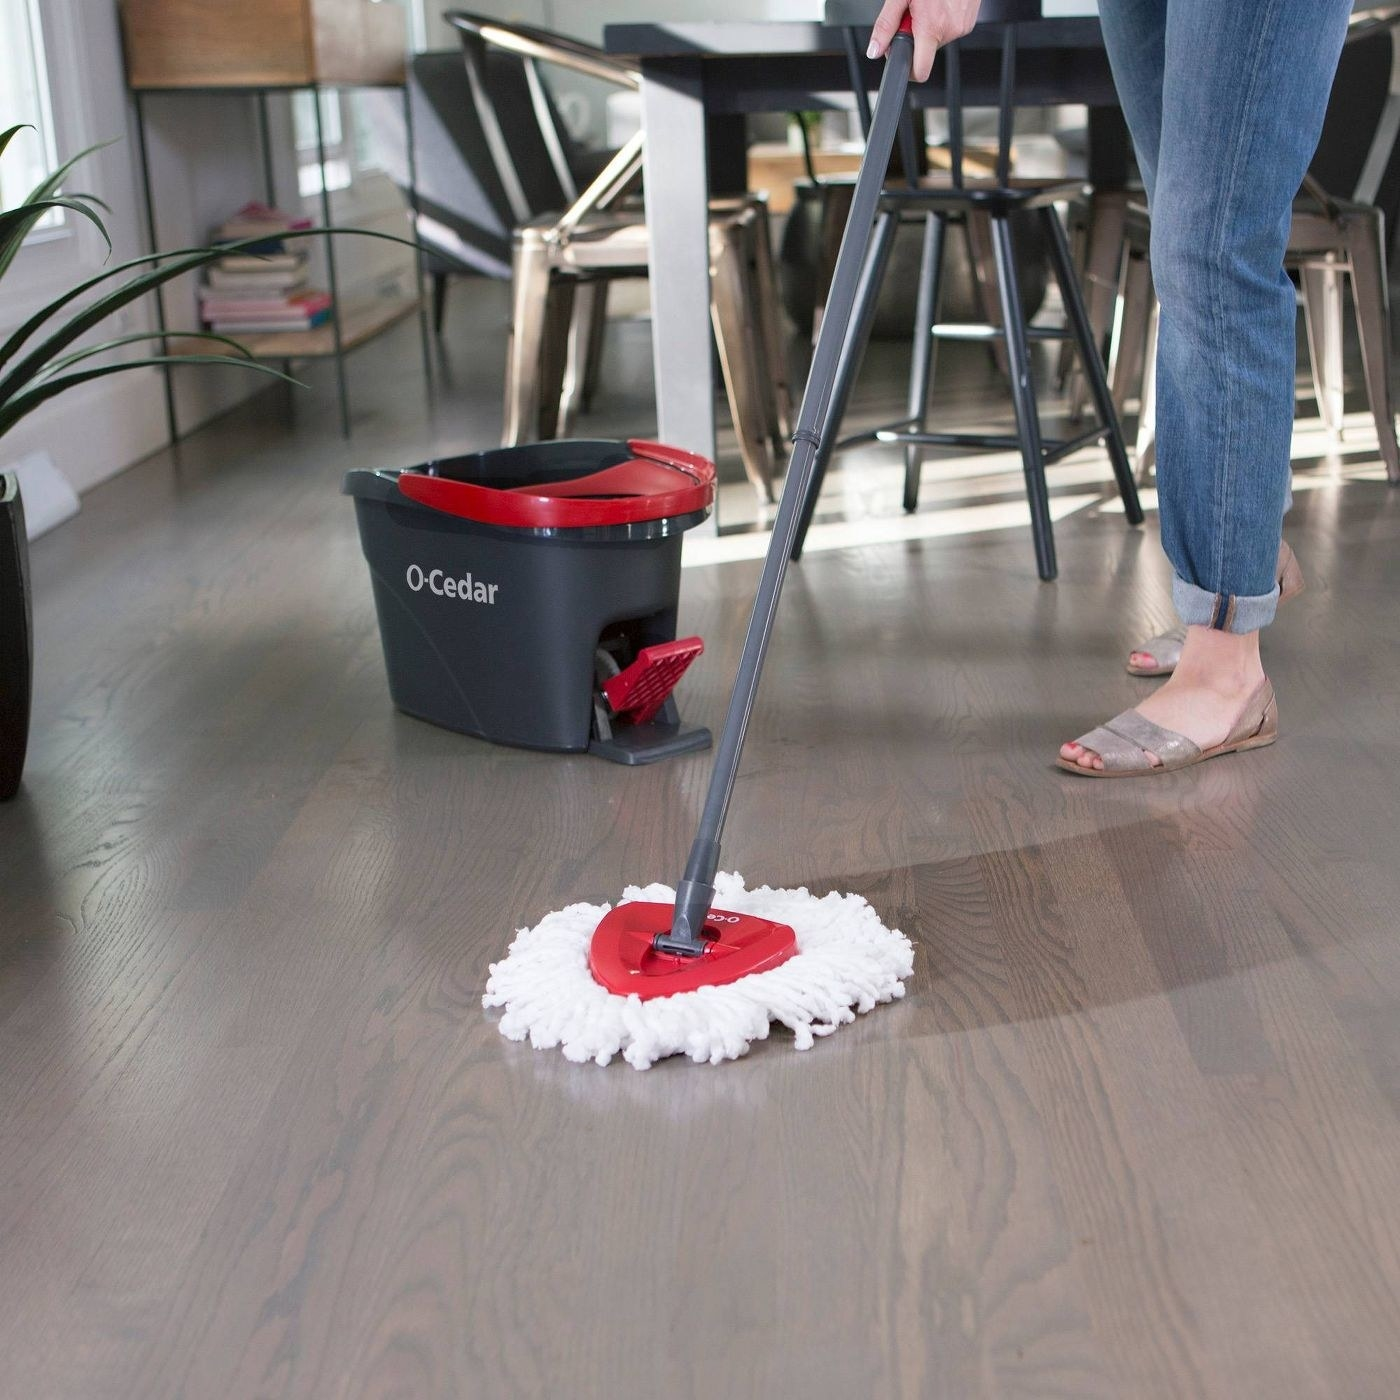 A person using the mop on a wood floor